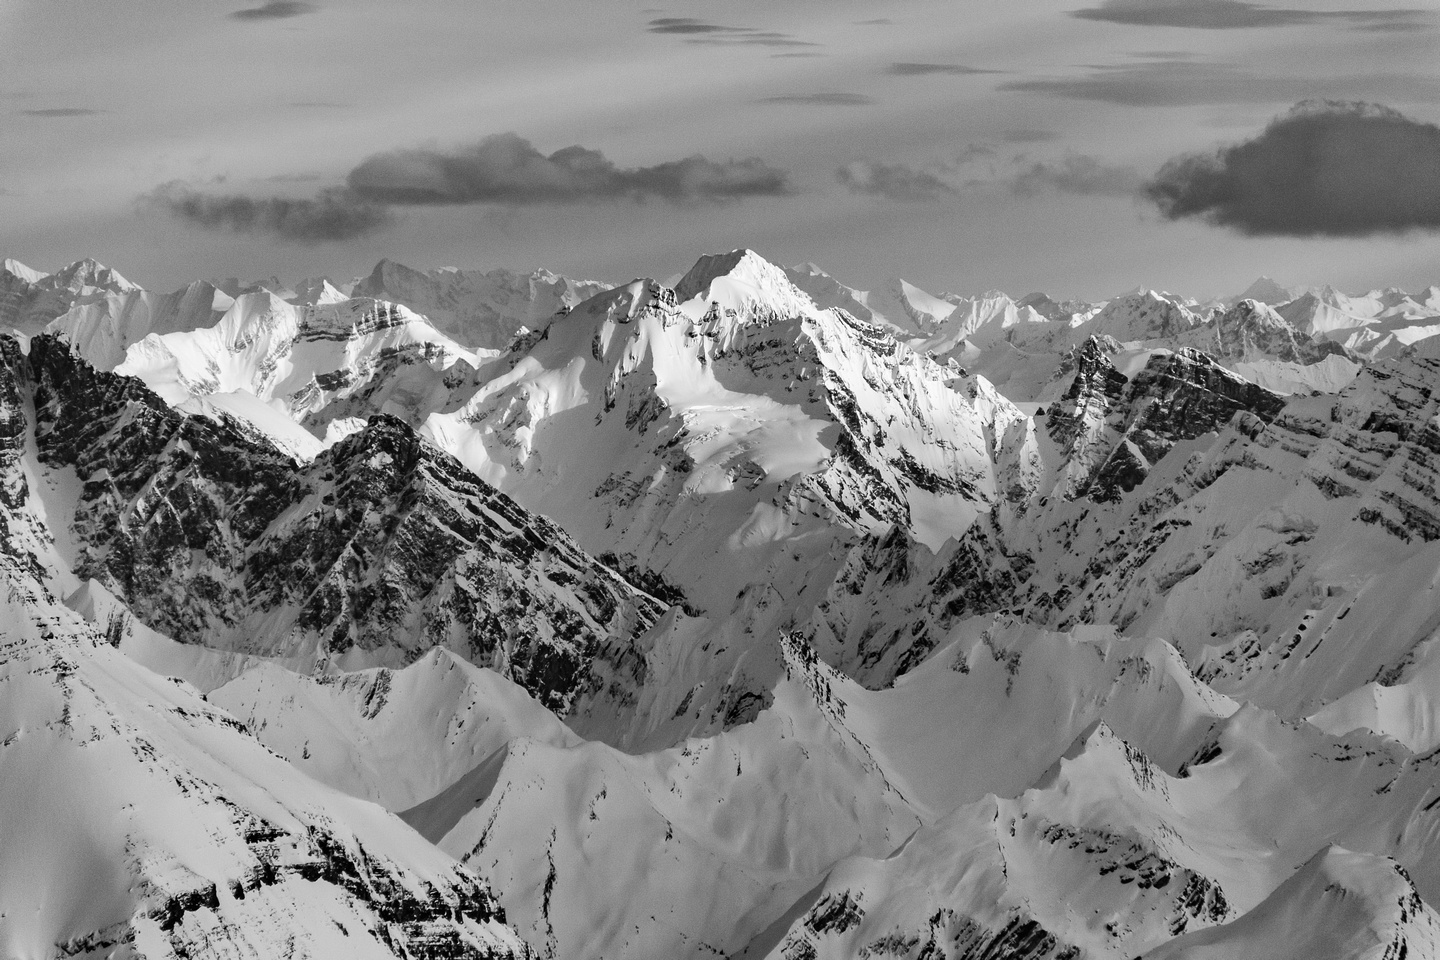 The Bush Group of peaks includes Rostrum, Bush, Icefall and the pointy Rostrum Tower on the R.